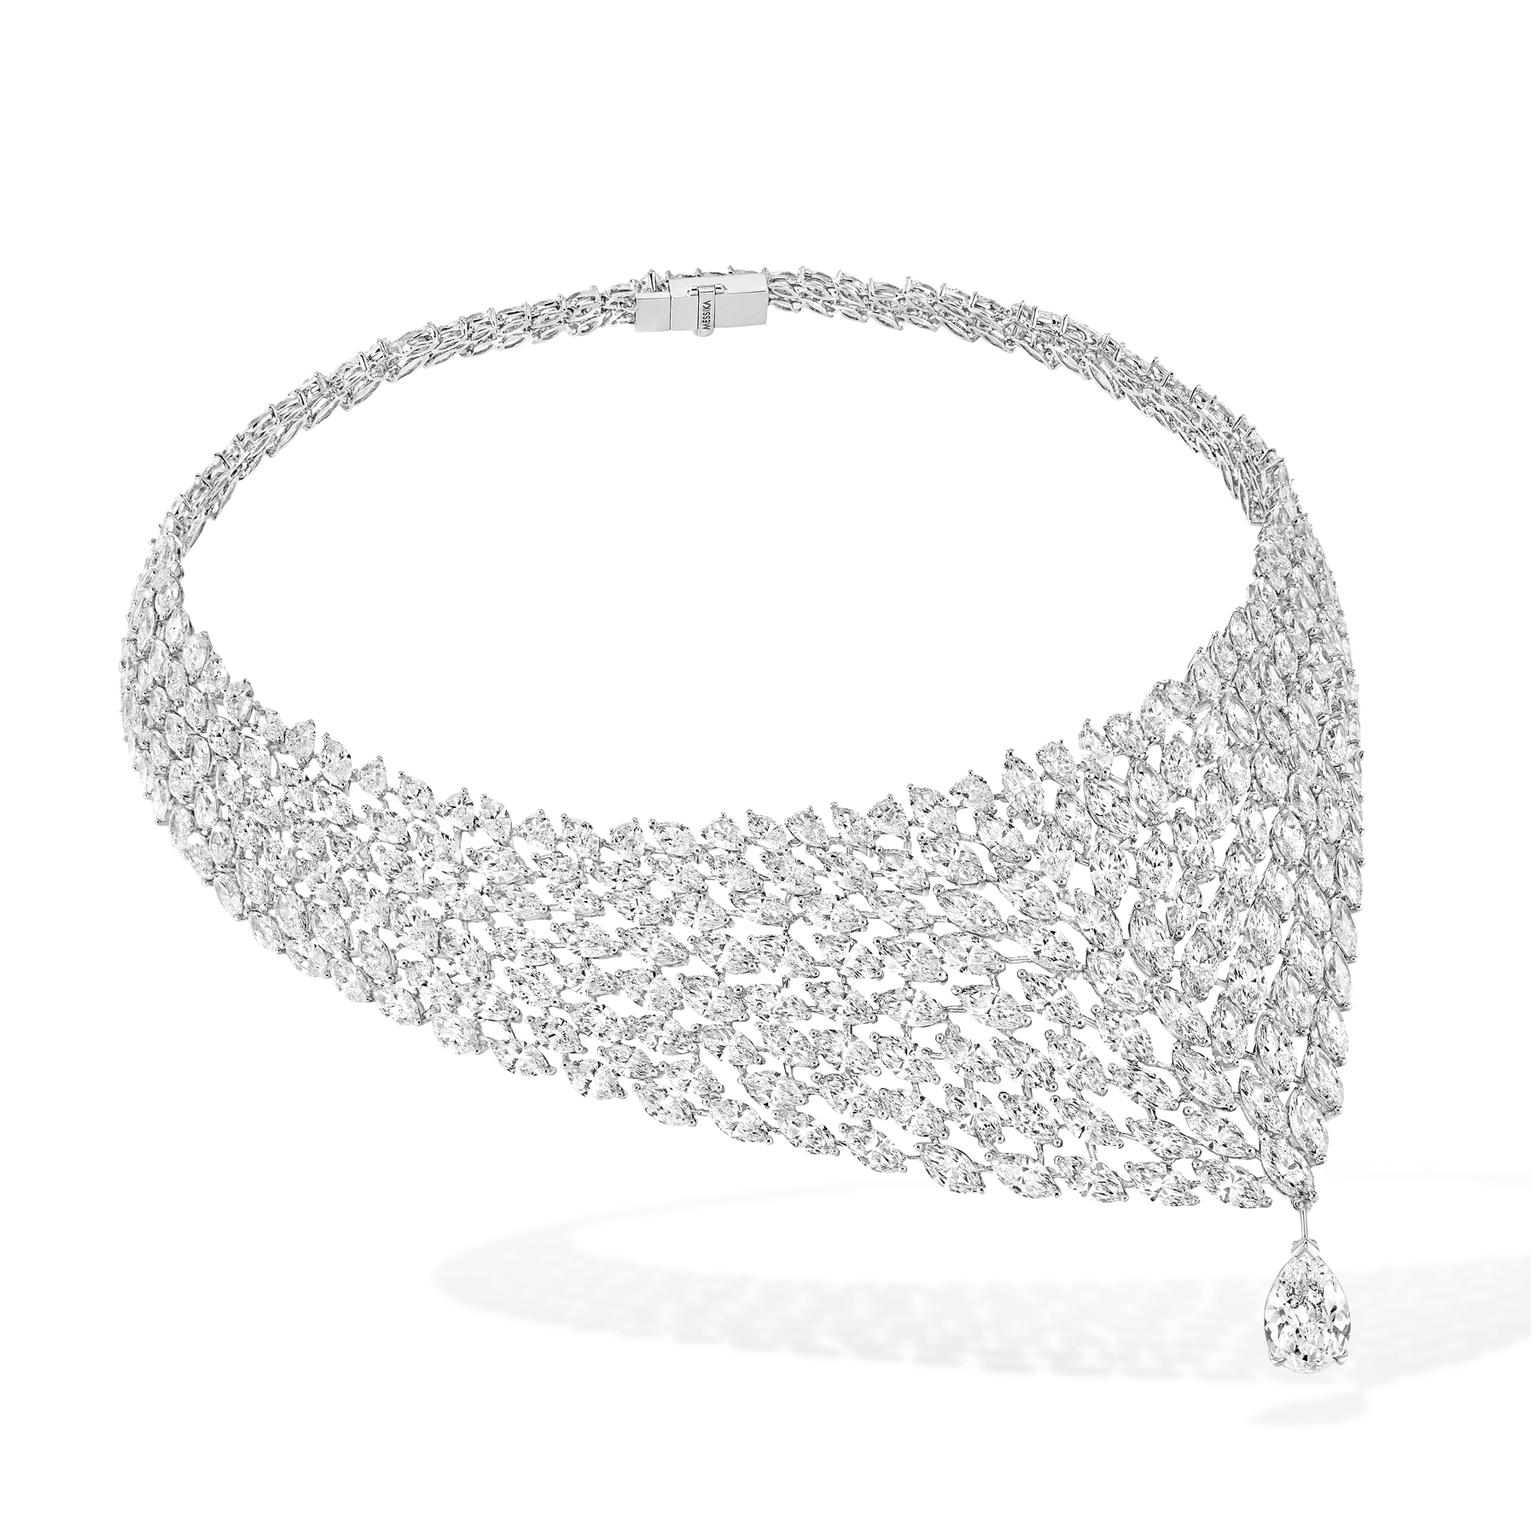 Messika-Joaillerie---Collier-Madeleine-6828